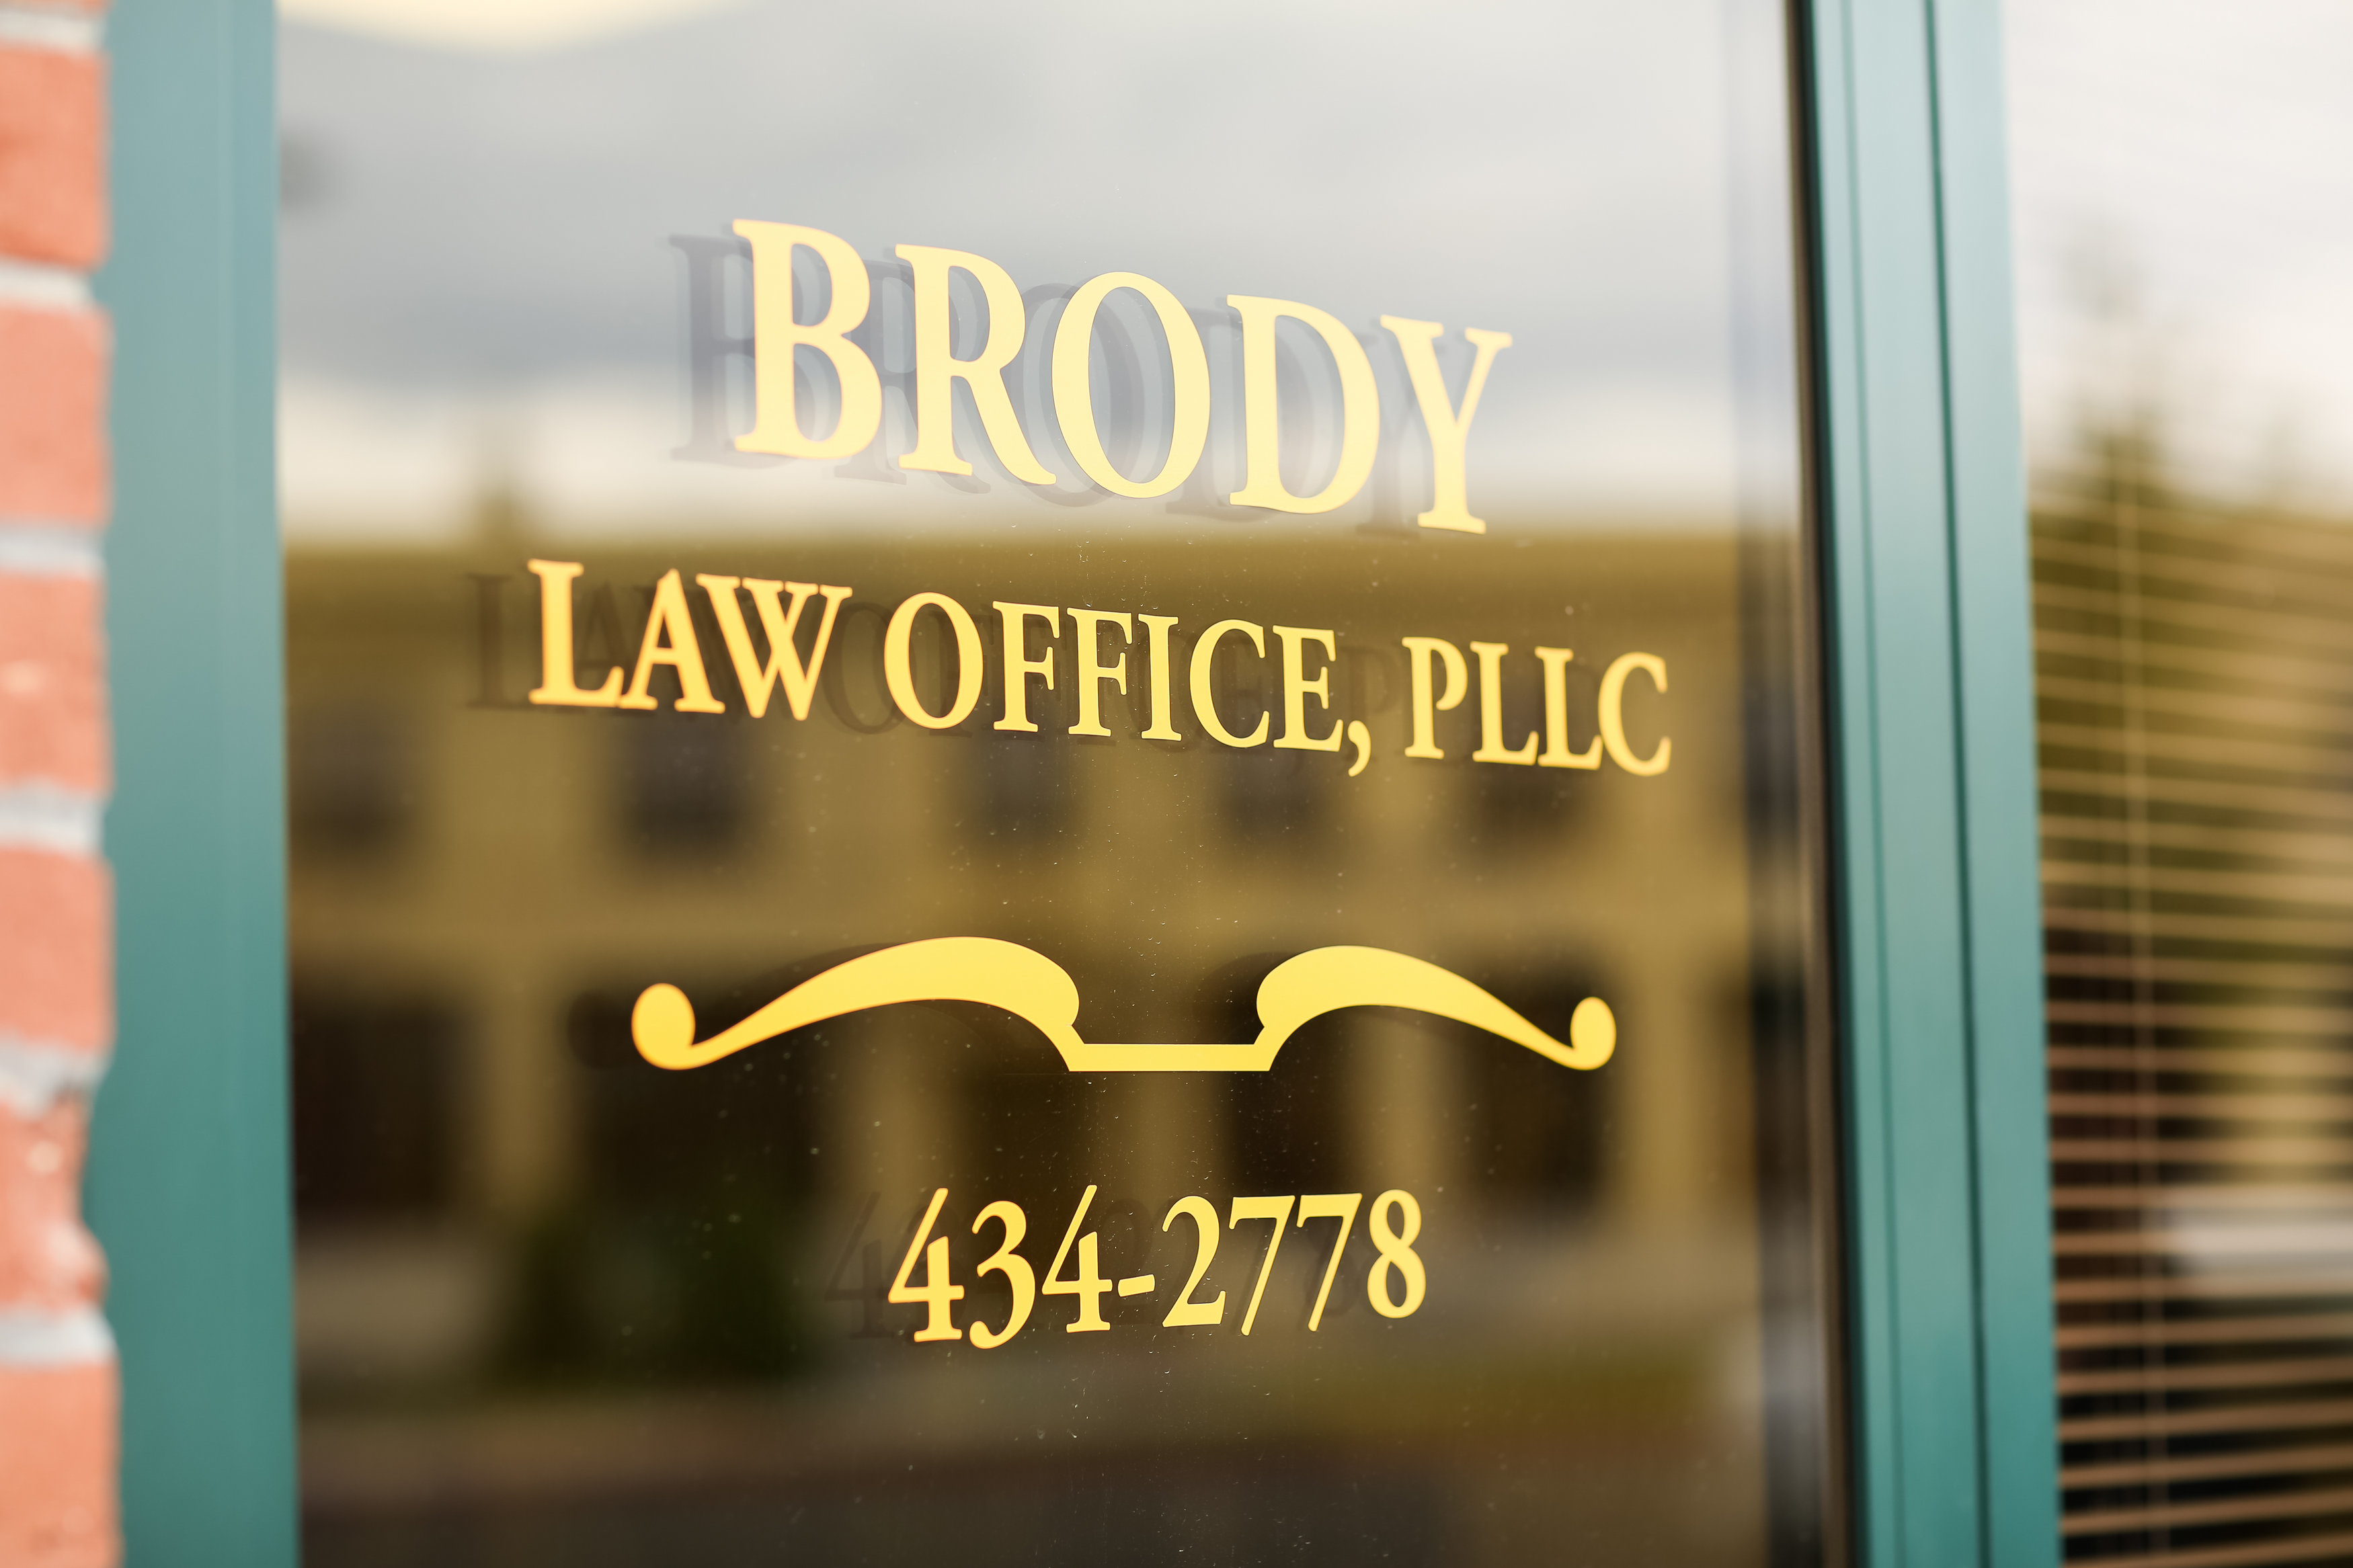 Brody Law Office, PLLC - ad image